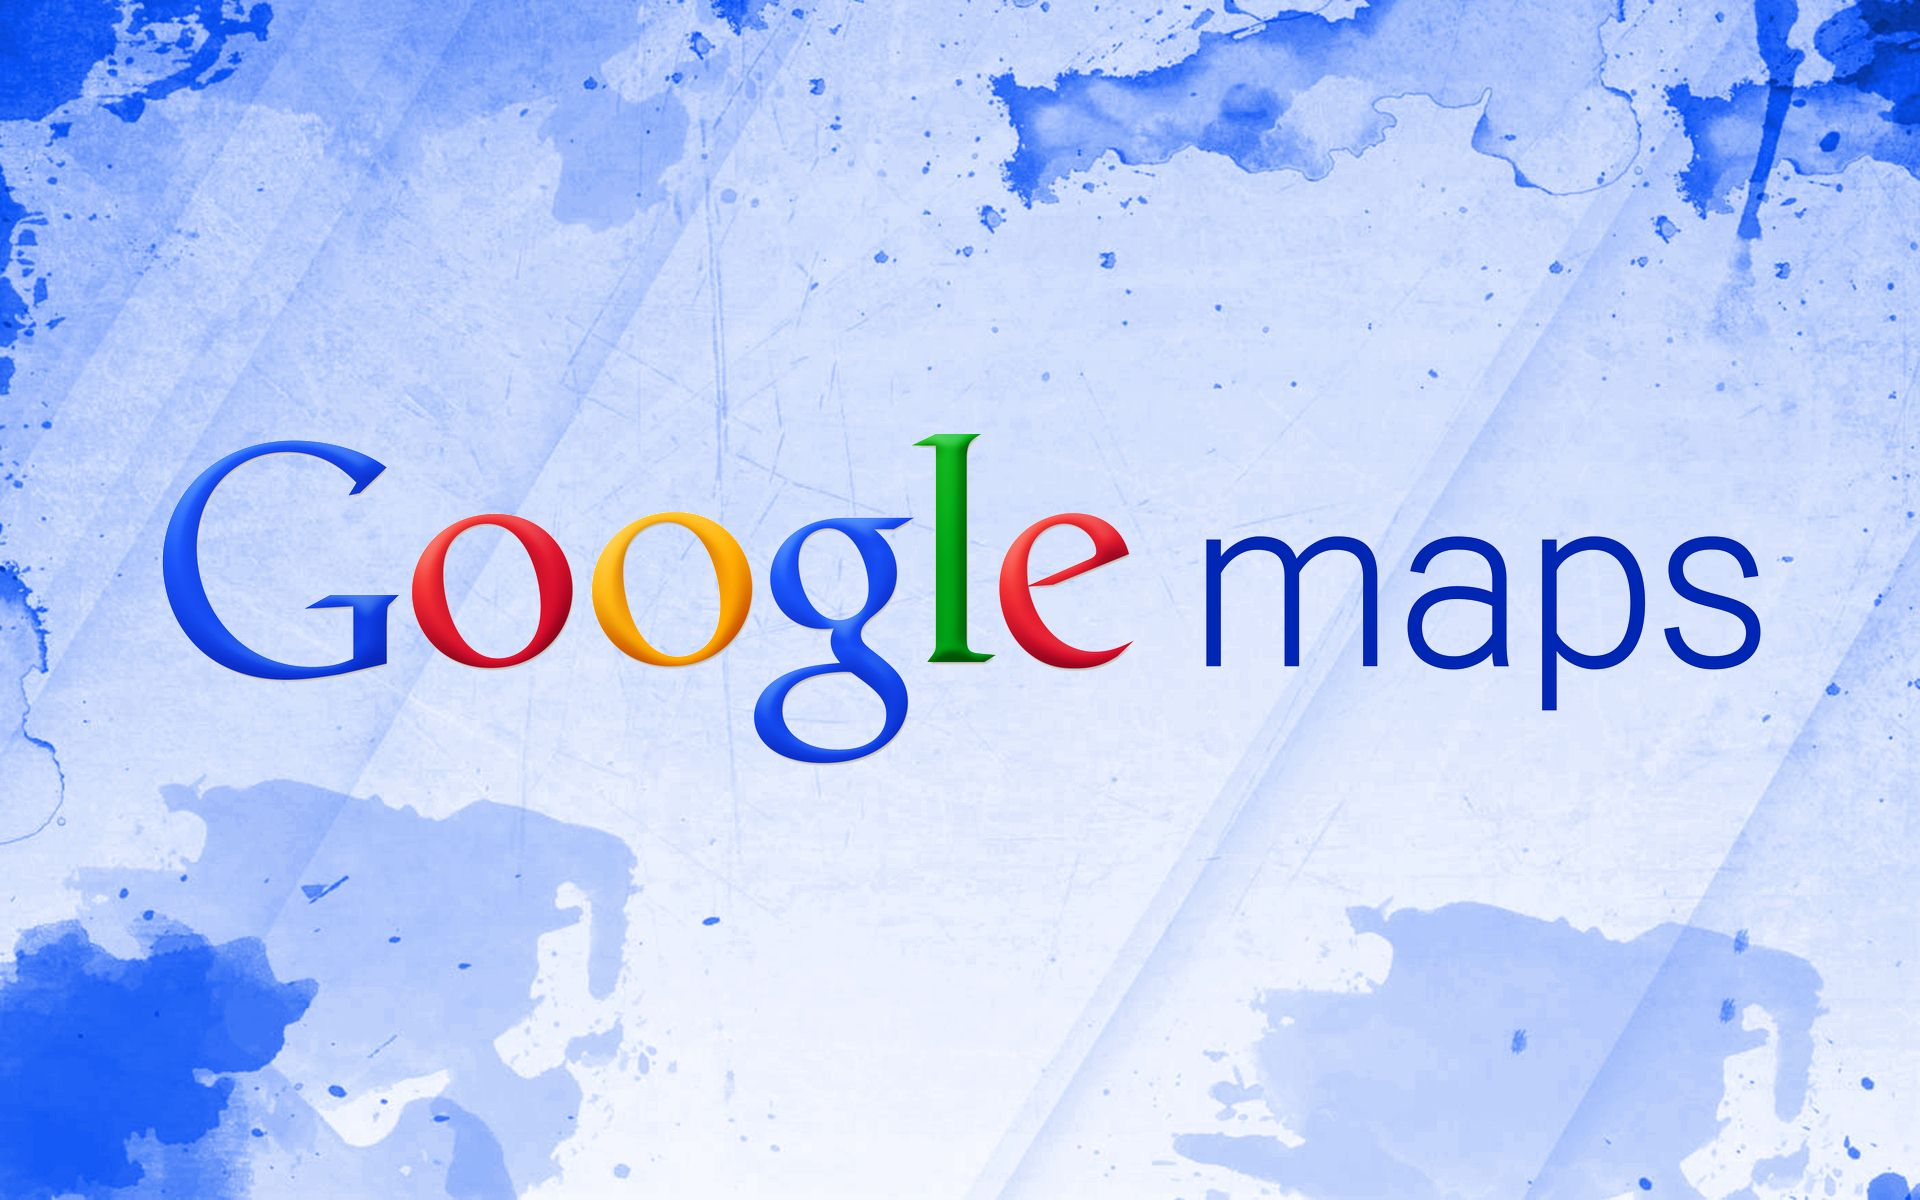 Google-Maps-Logo-Wallpaper